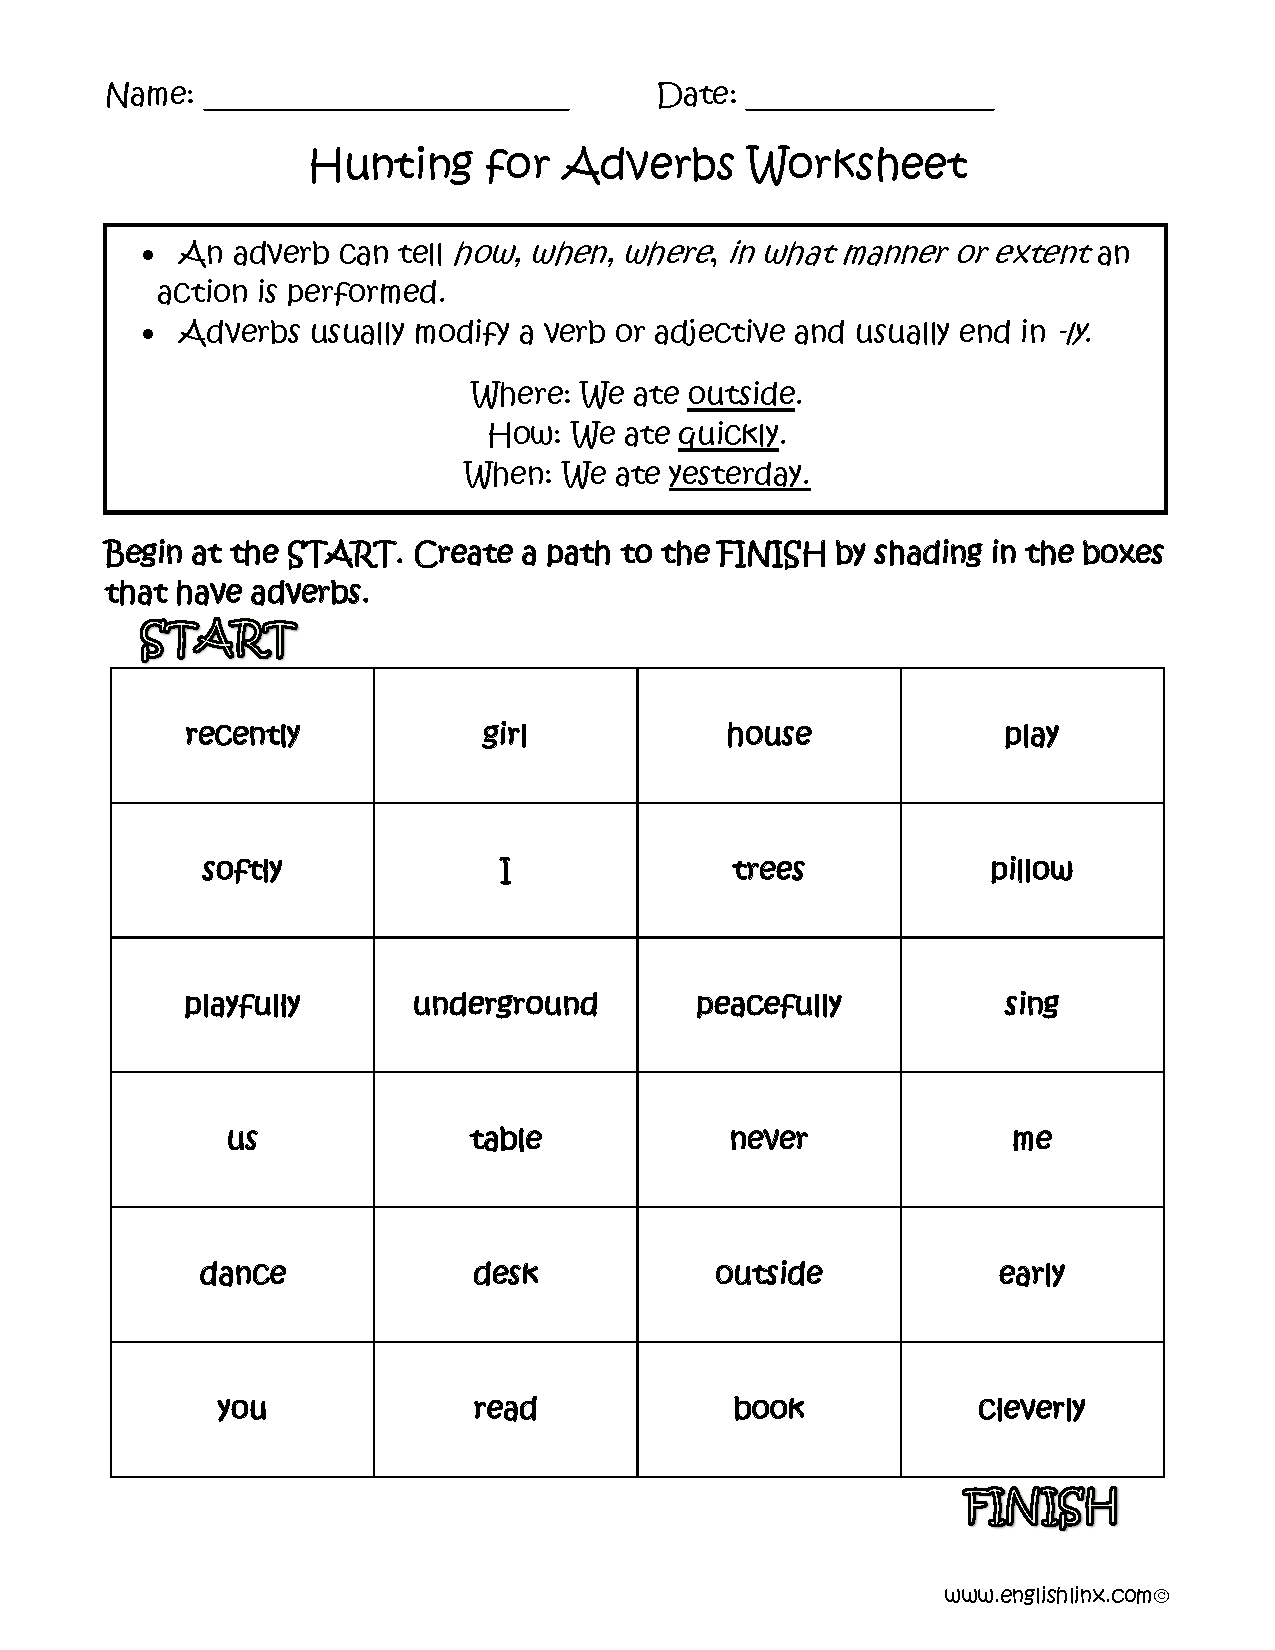 Hunting for Adverbs Worksheets   Adverbs worksheet [ 1650 x 1275 Pixel ]